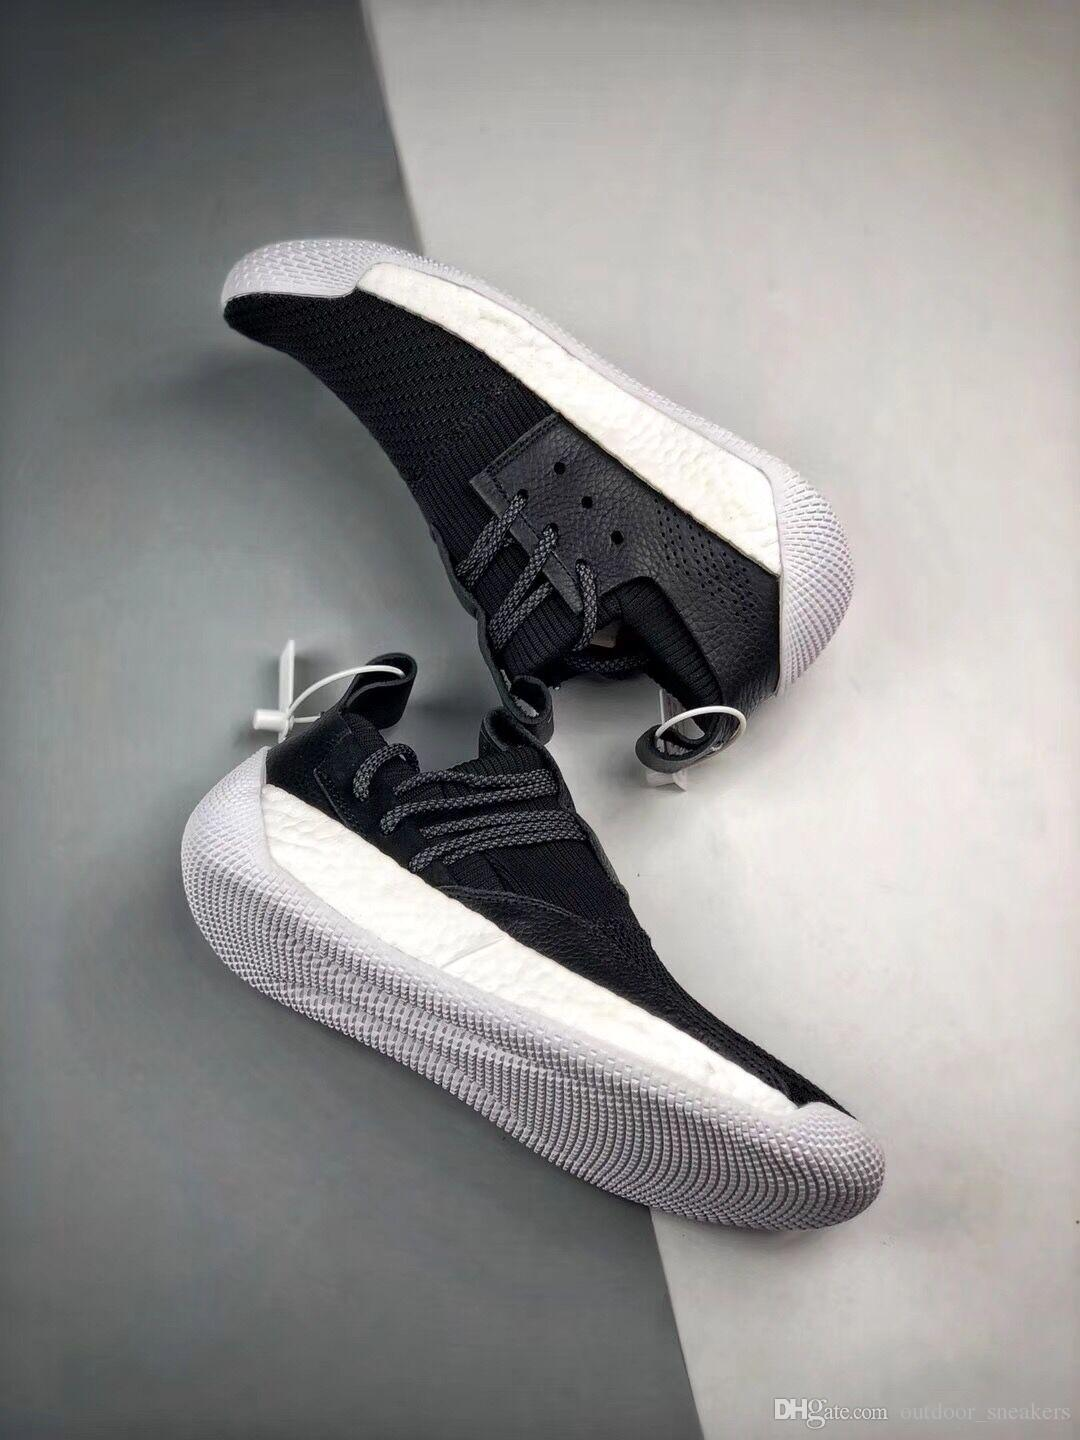 505aa933064d 2019 2018 James Harden Vol.2 Basketball Shoes Harden LS 2 Lace B28170  BB7651 Harden LS 2 CREATED WITH Shoes Life Style From Outdoor sneakers